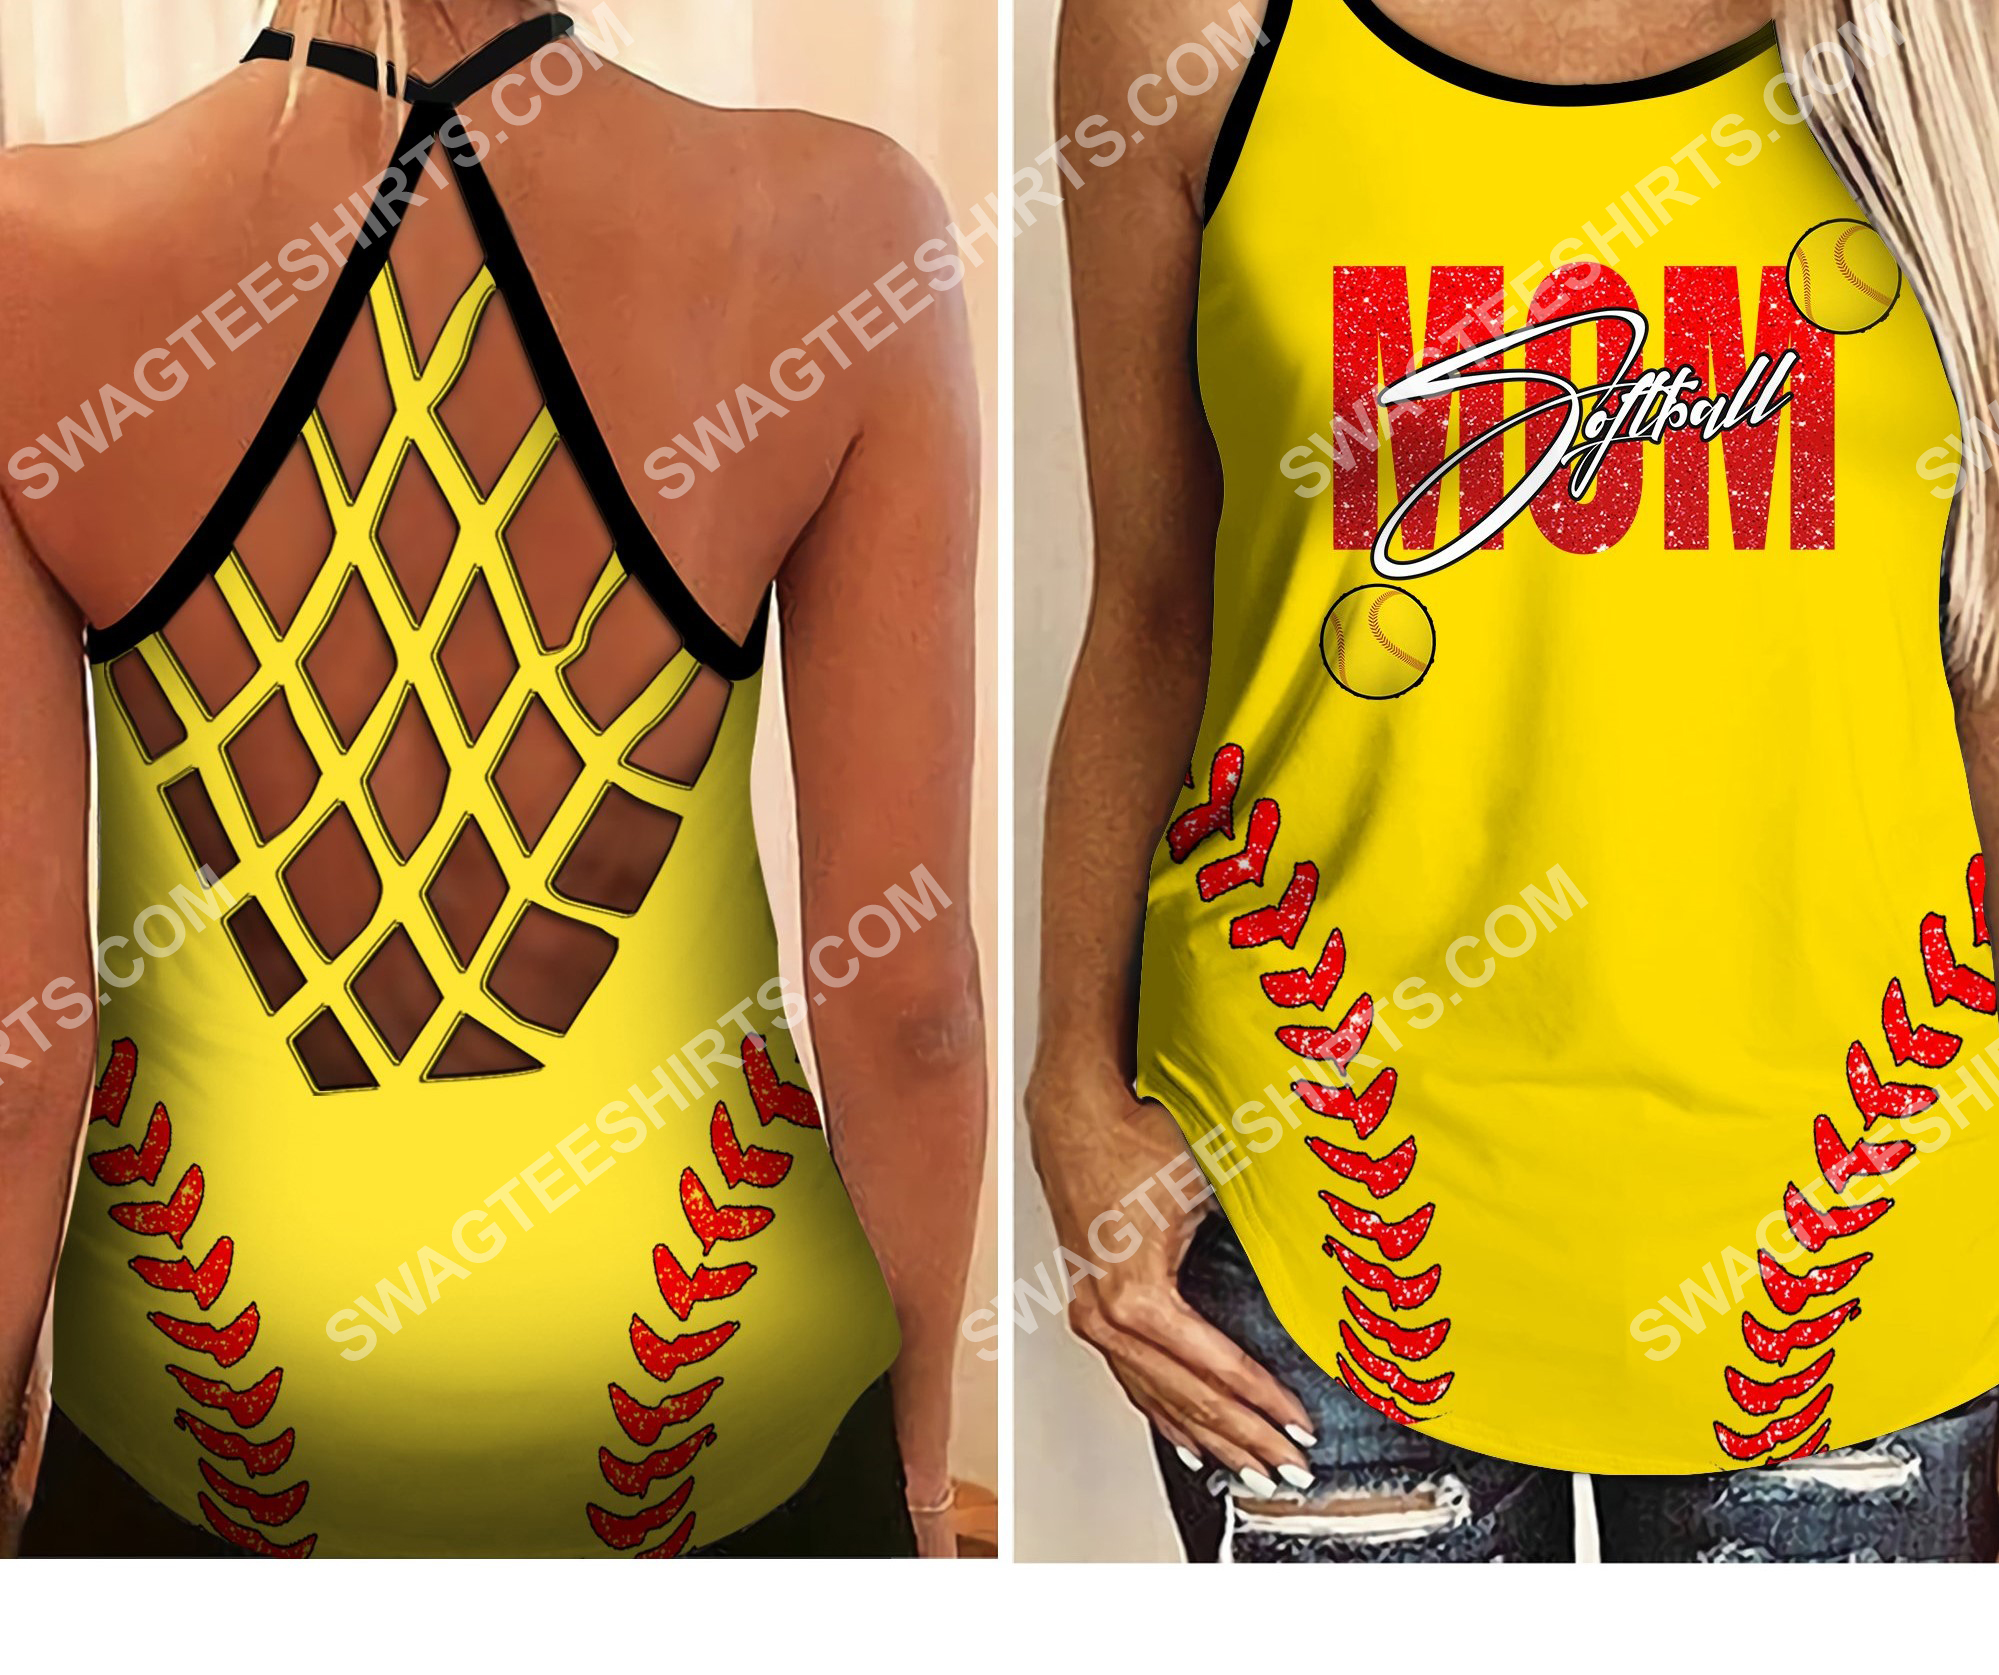 mom softball all over printed criss-cross tank top 2